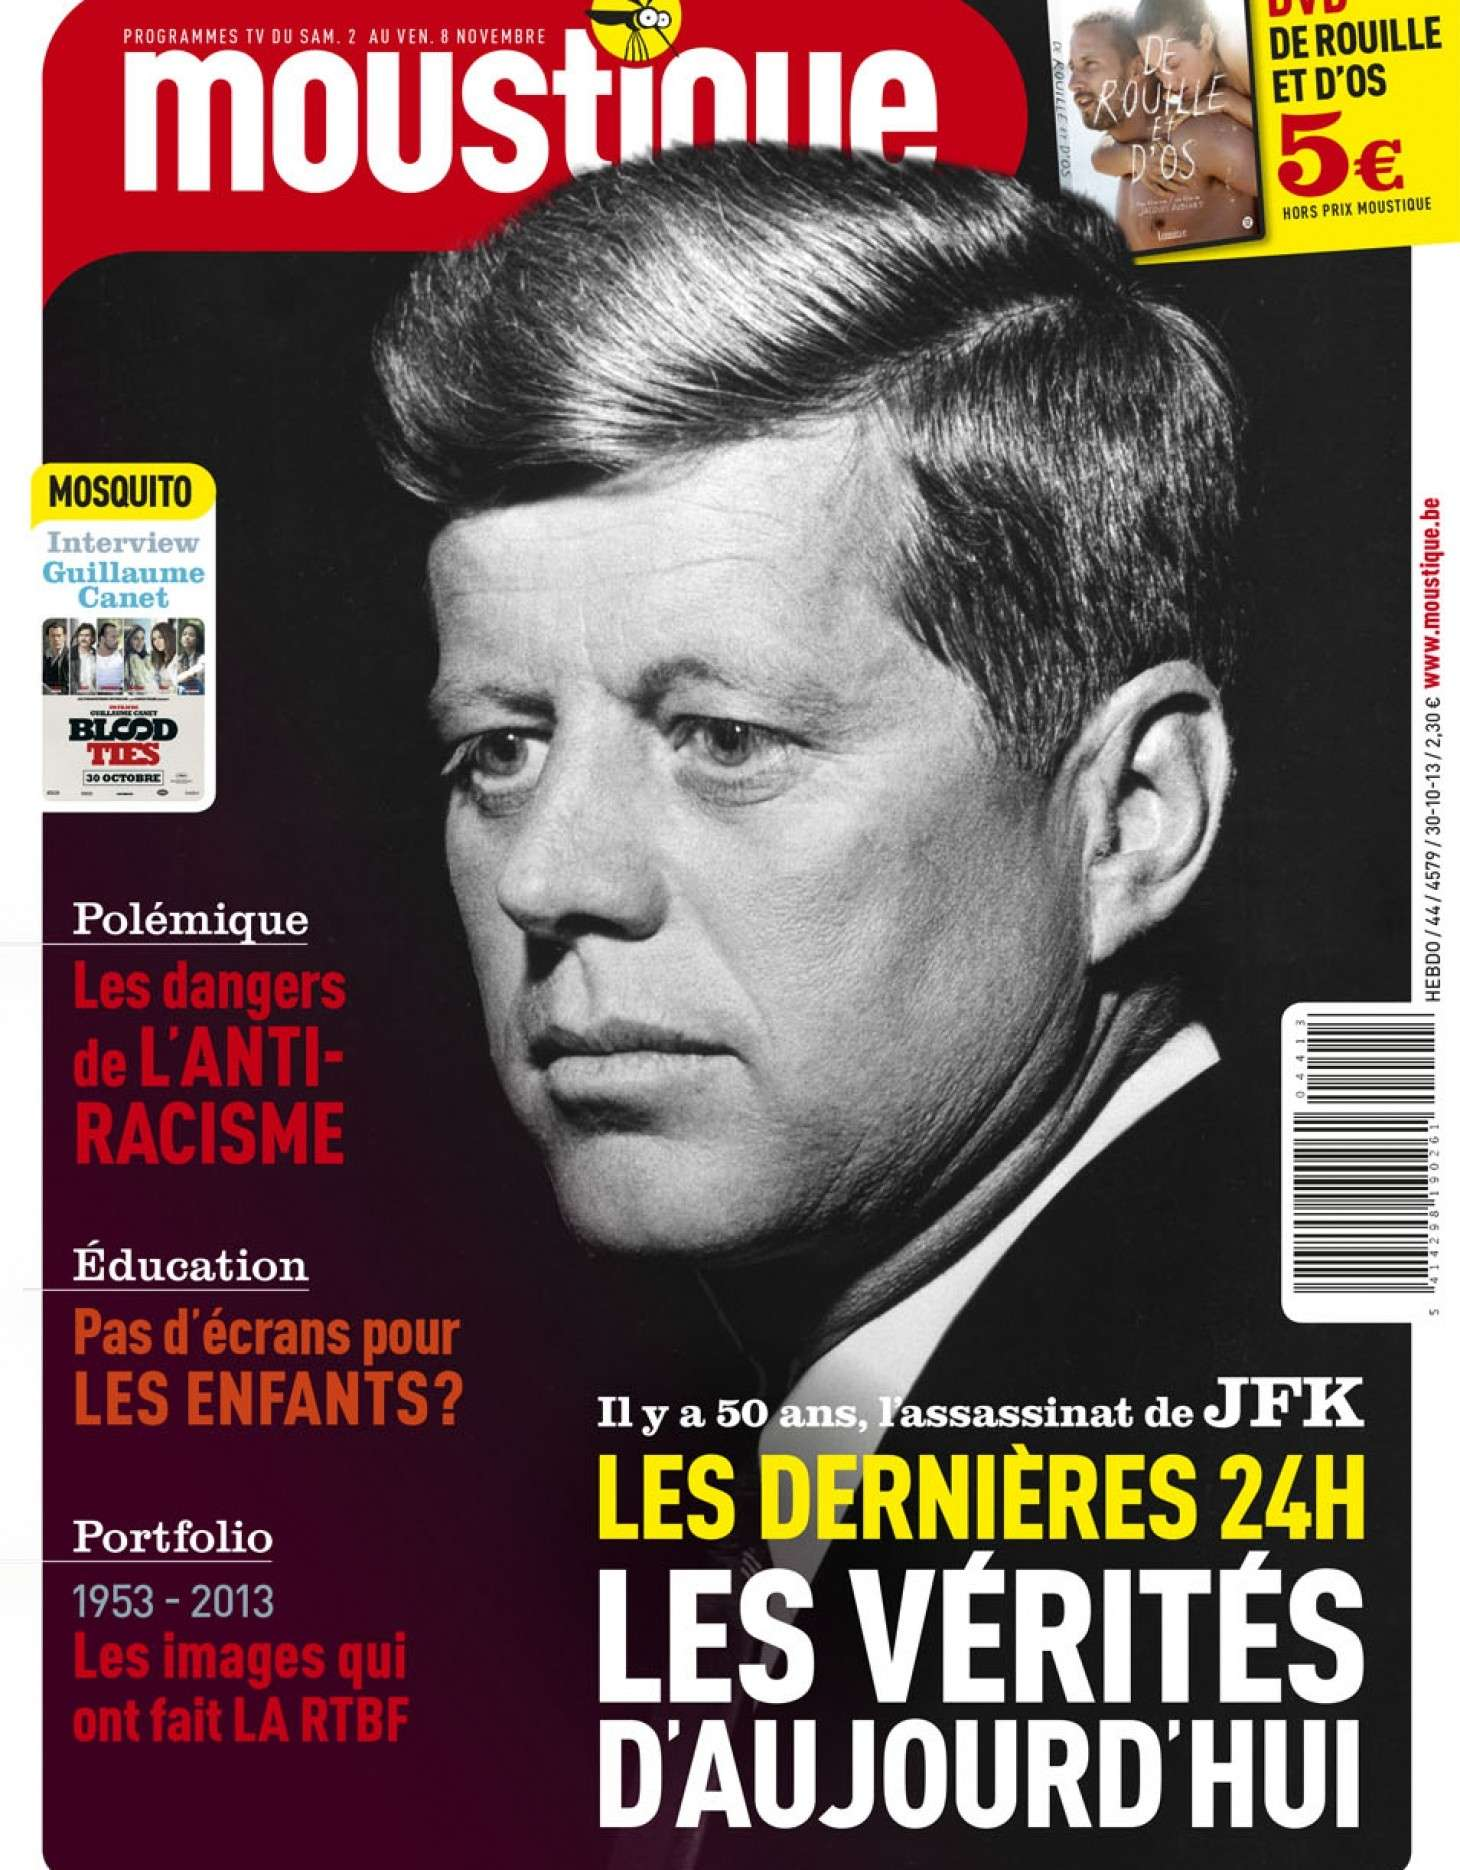 Il y a 50 ans, l'assassinat de JFK